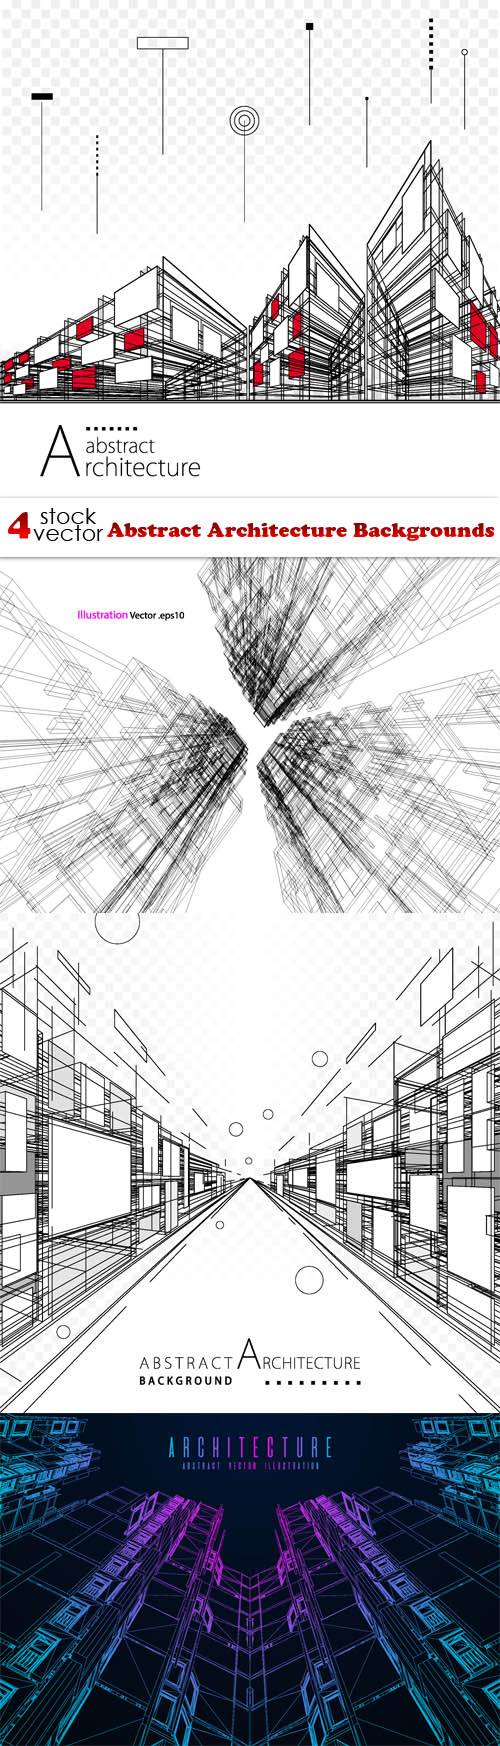 Vectors - Abstract Architecture Backgrounds